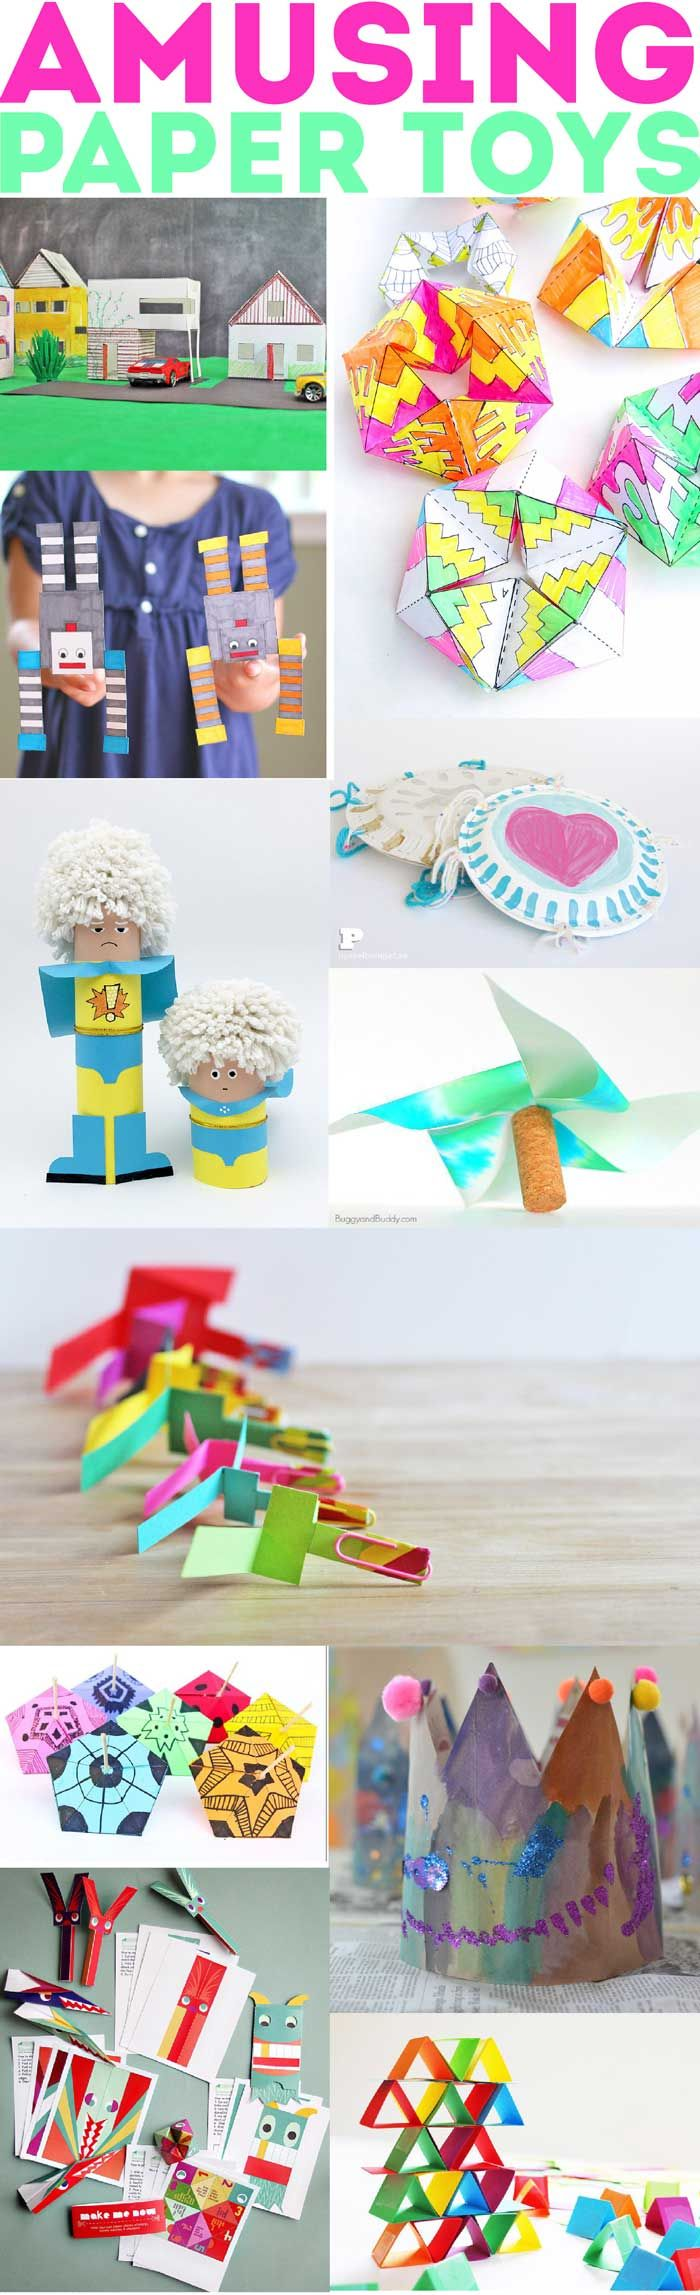 3883 Best Images About Art And Crafts For Kids On Pinterest